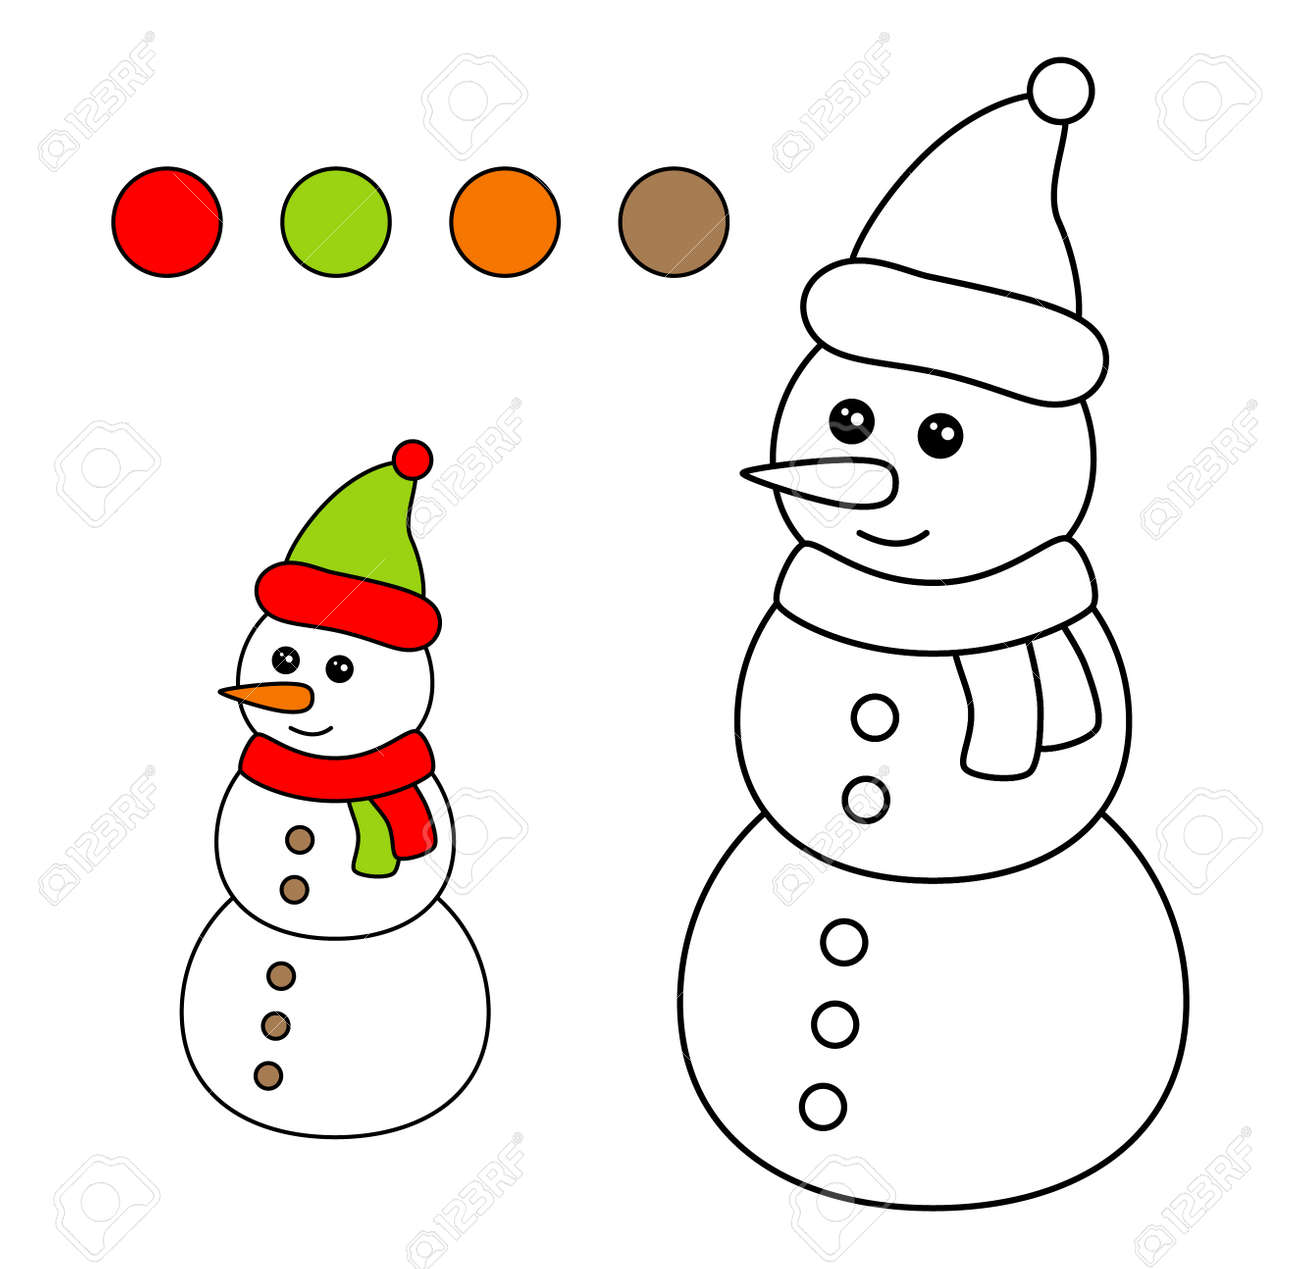 Christmas Pictures For Kids.Coloring Book For Children Drawing Kids Activity Christmas